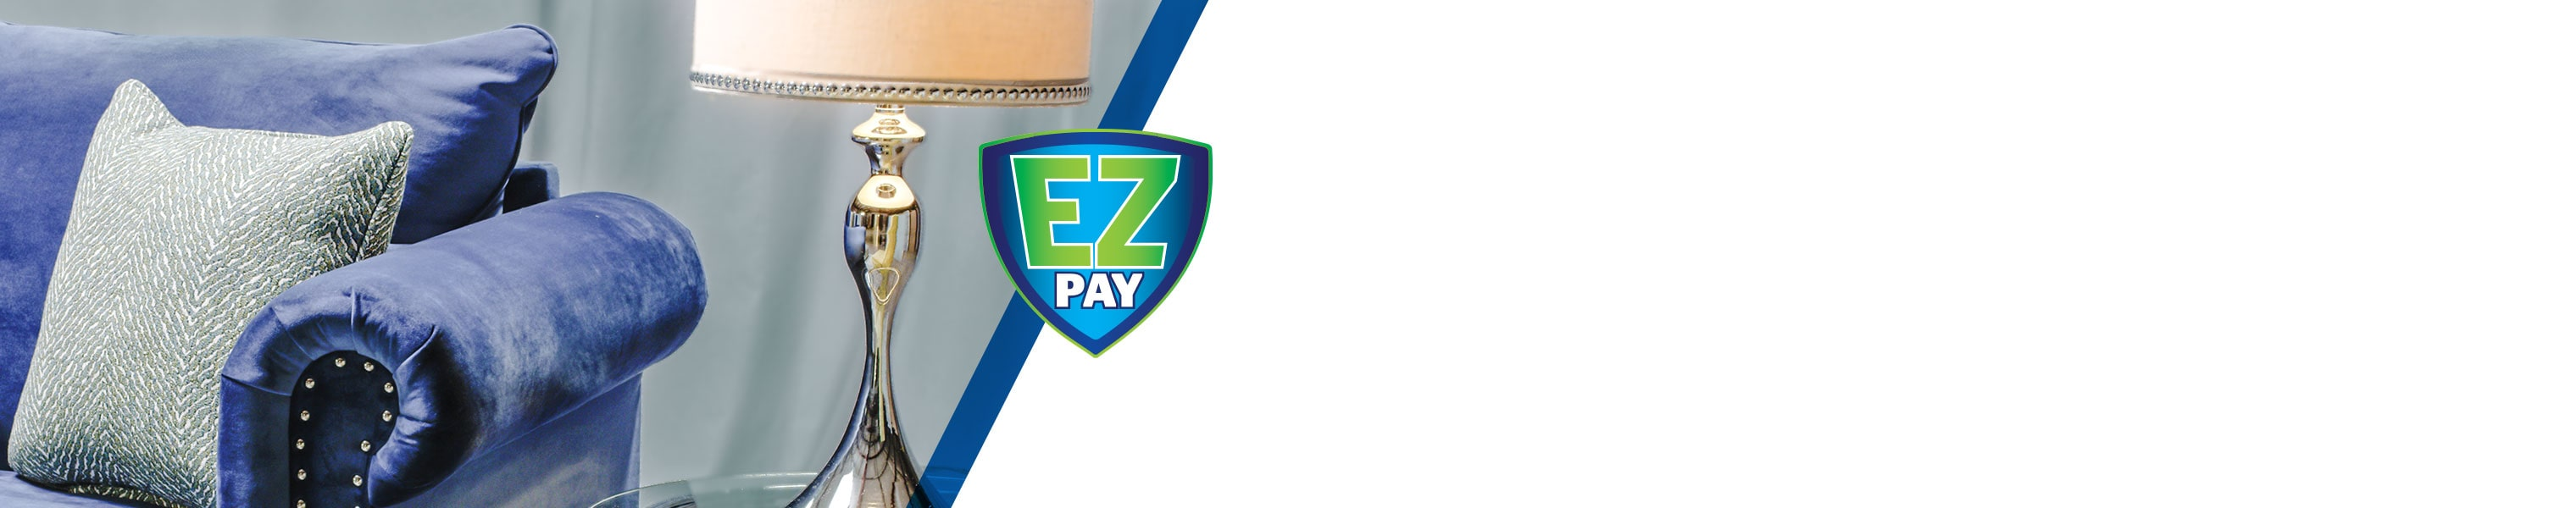 Never worry about missing a payment with EZPay